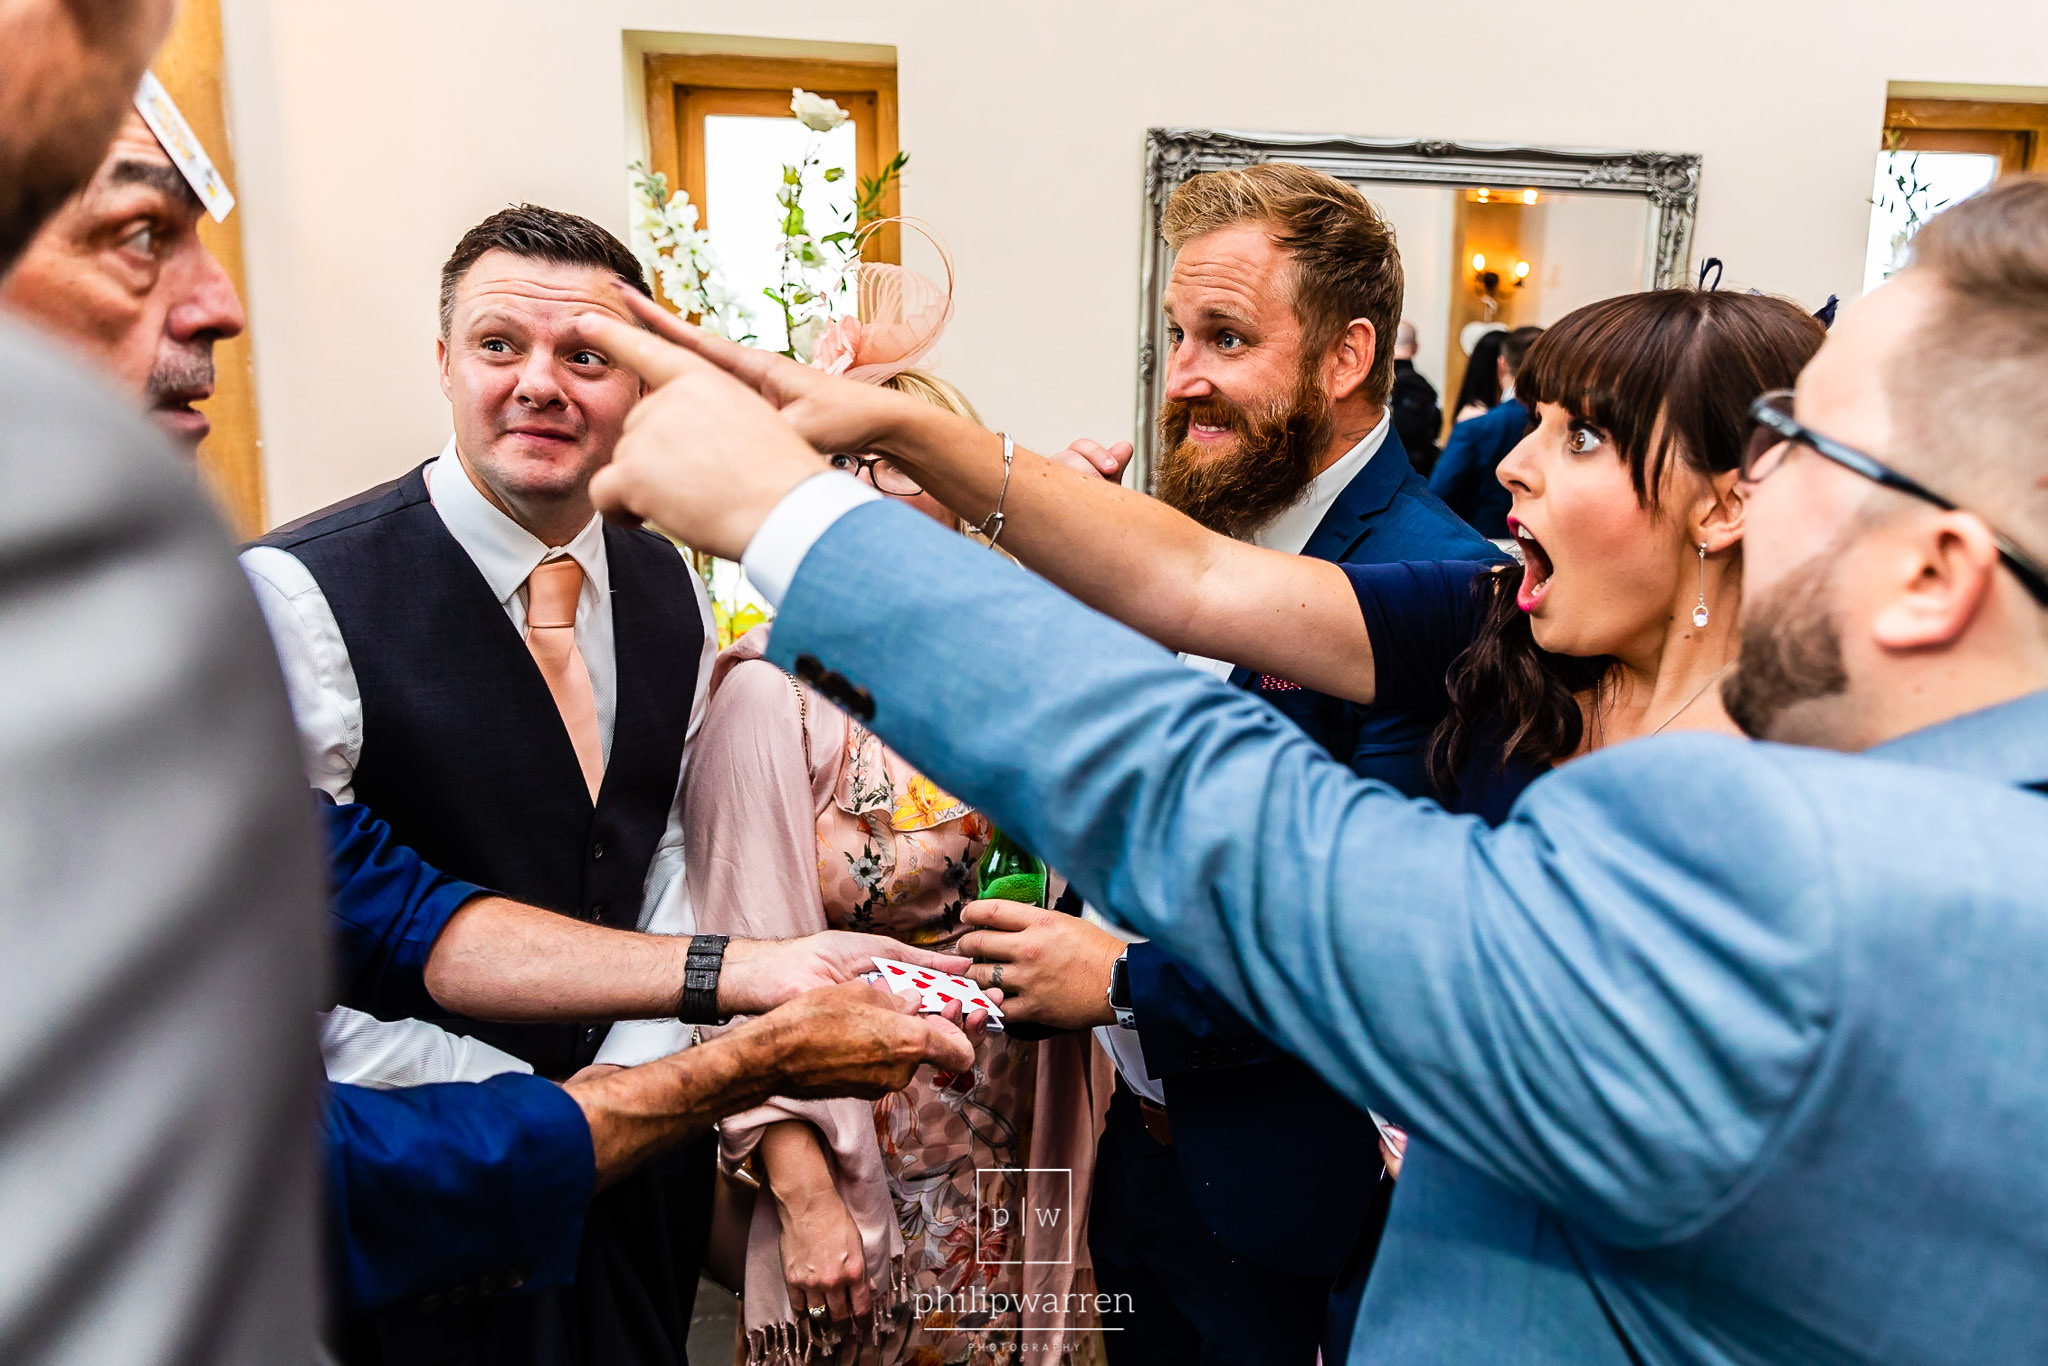 guests amazed at wedding magician tricks